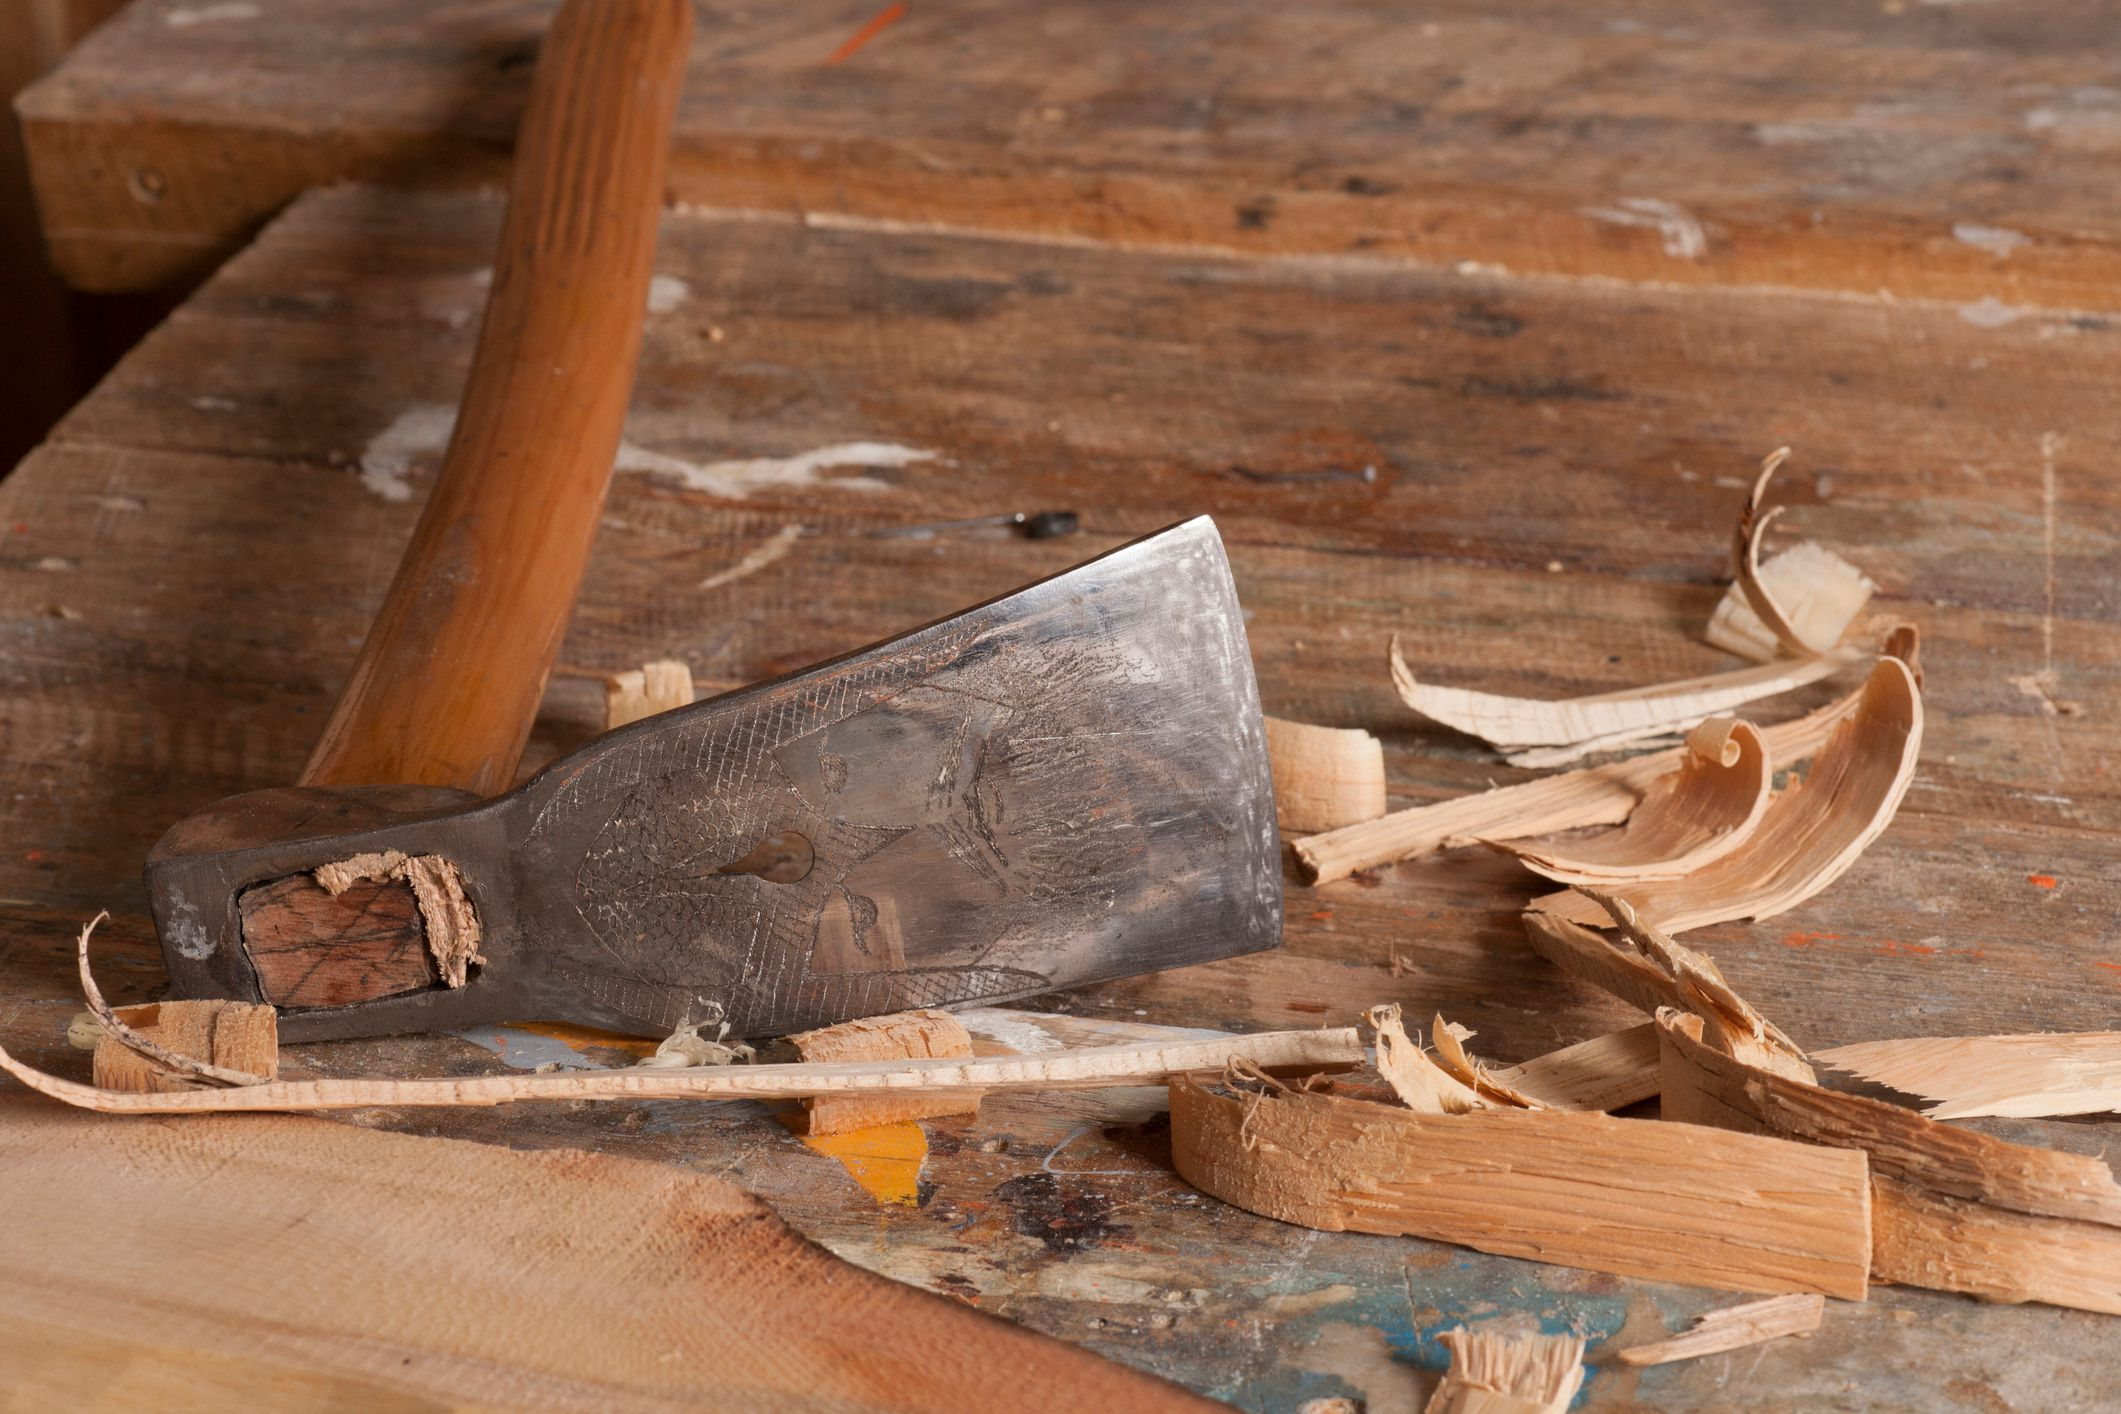 Adze A Tool For Working Wood